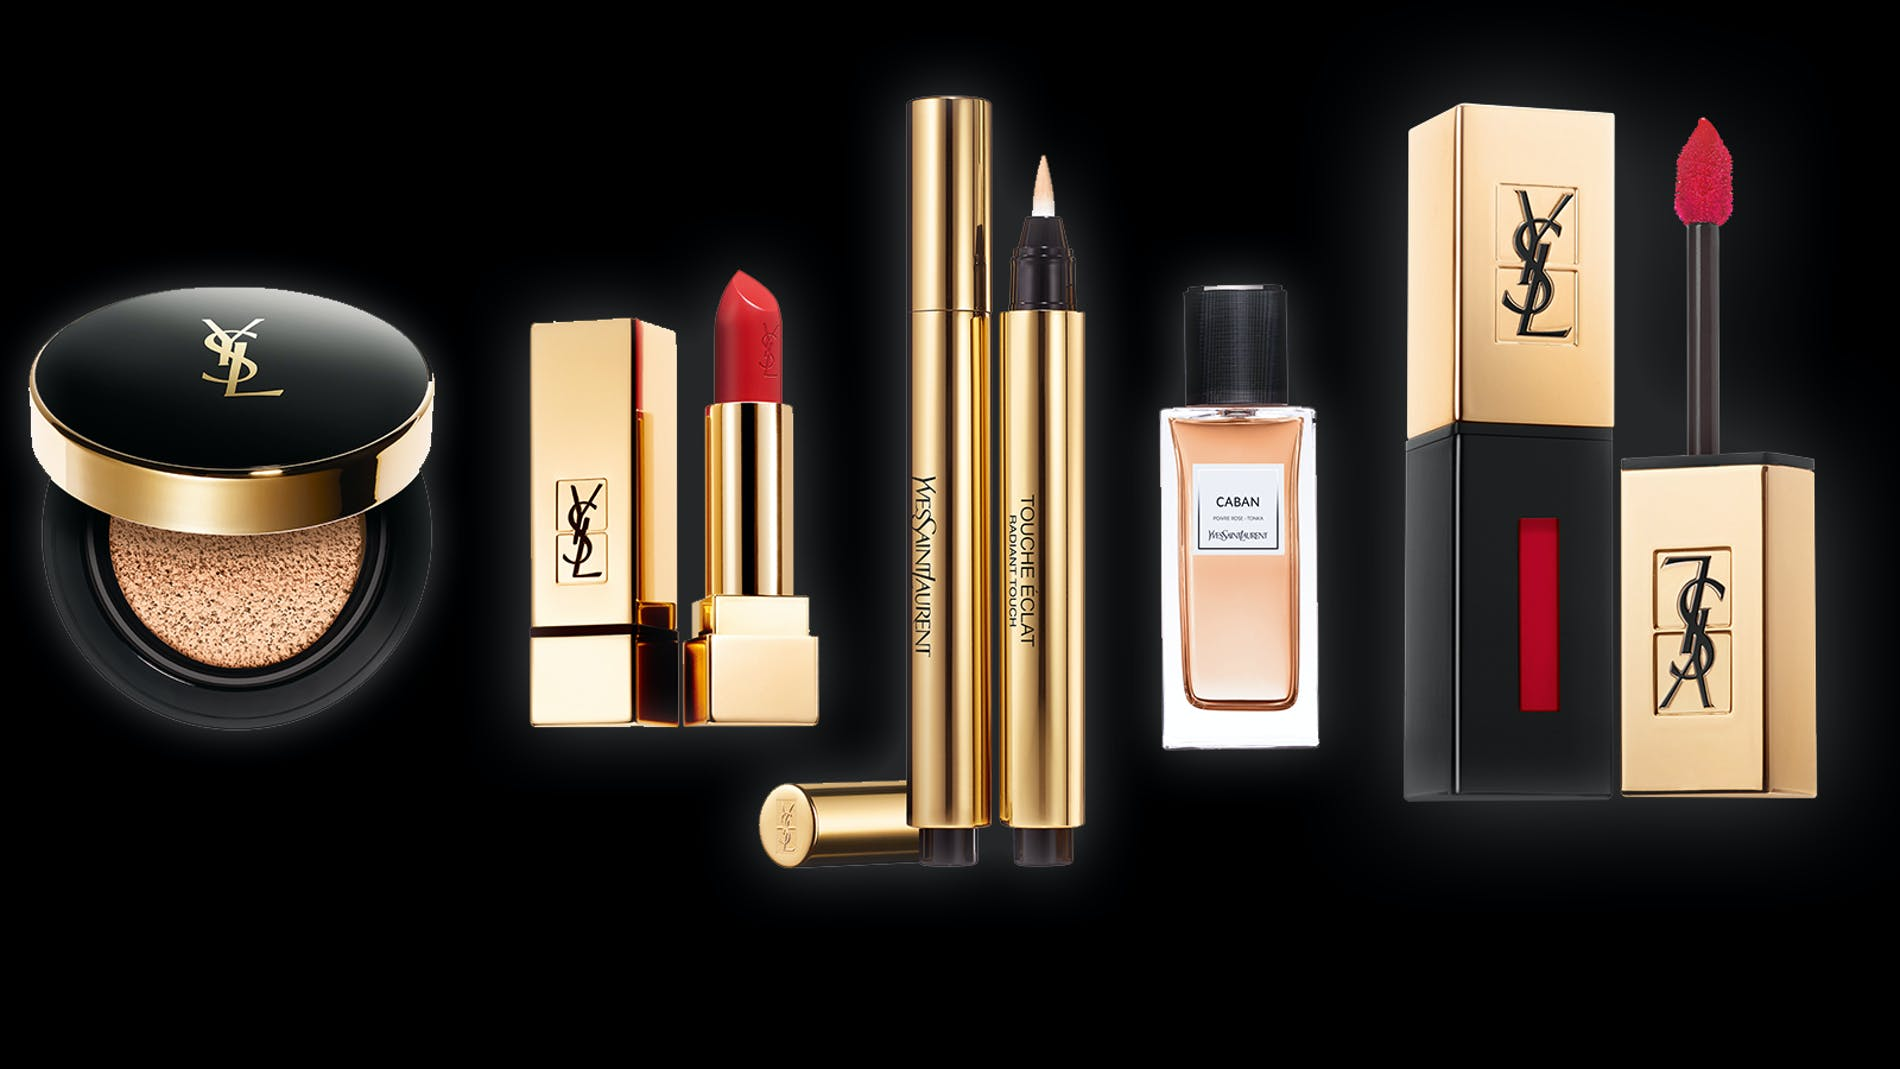 YSL foundation at Malaysia official online store